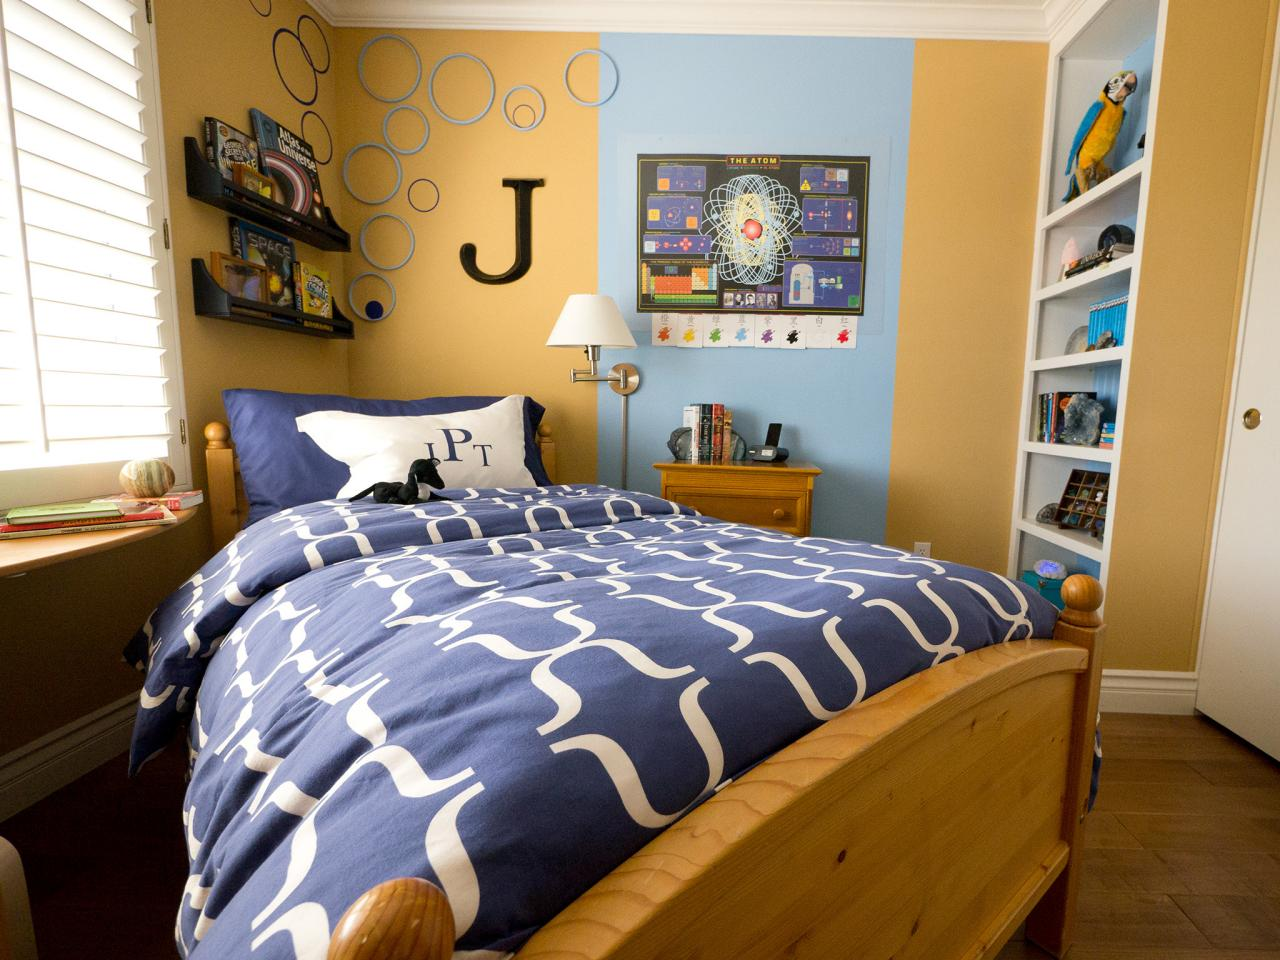 small boy 39 s room with big storage needs kids room ideas for playroom bedroom bathroom hgtv. Black Bedroom Furniture Sets. Home Design Ideas